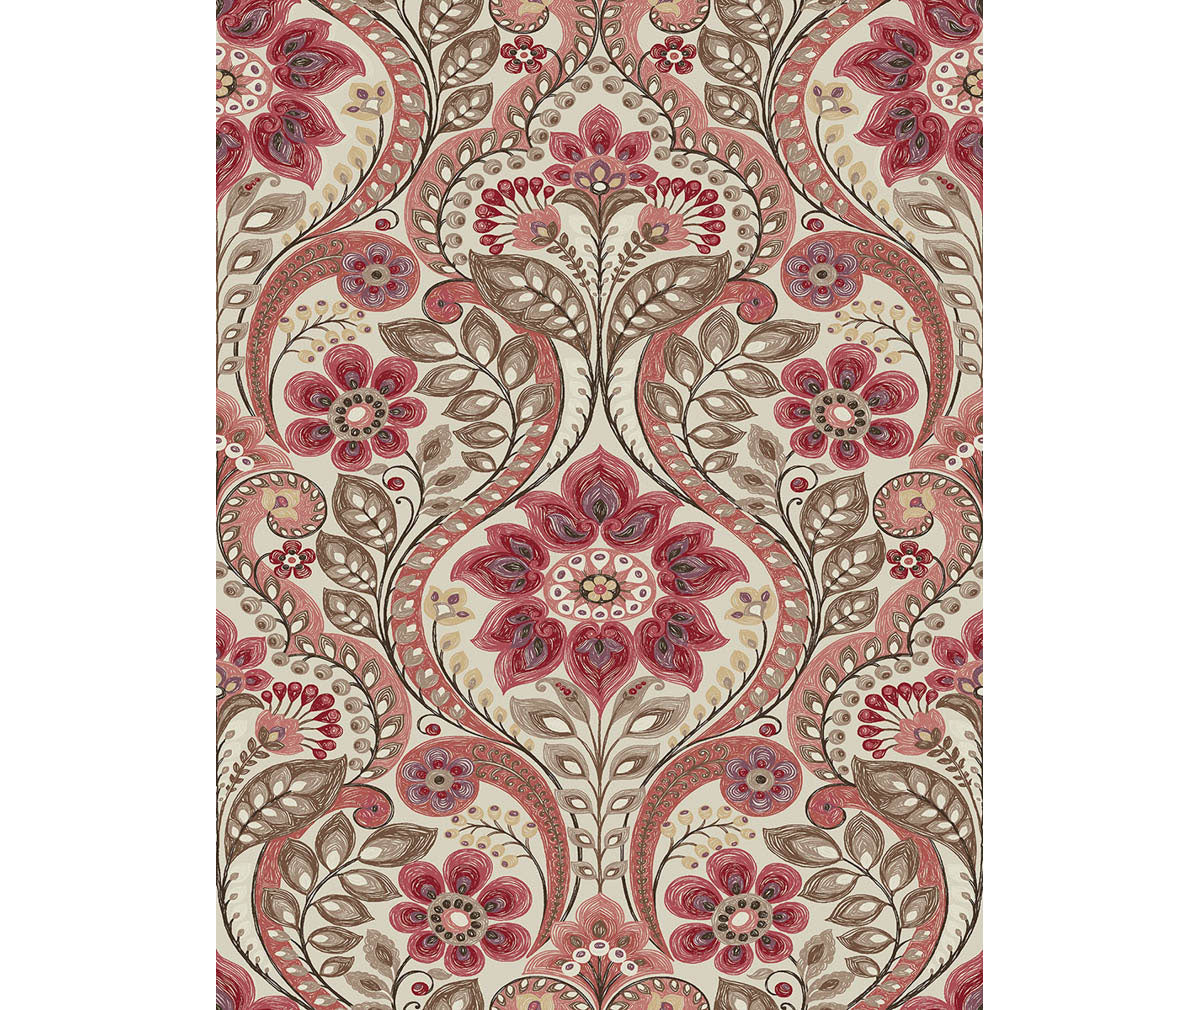 Night Bloom Coral Damask Wallpaper available at Barrydowne Paint